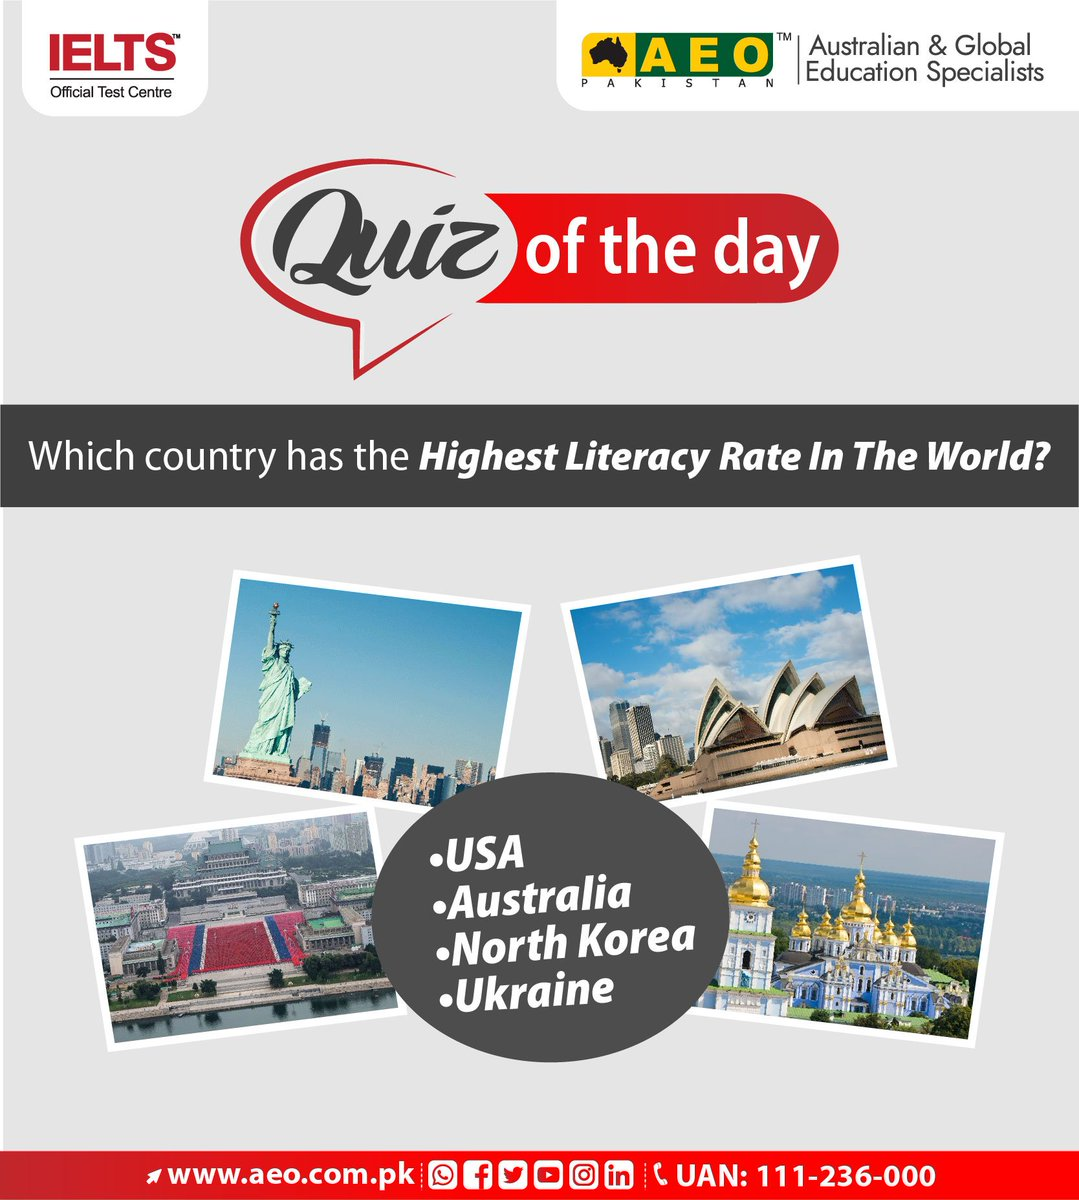 "#WeekendVibes Answer our ""quiz of the day"" and get a chance to win an exclusive souvenir from #AEOPakistan. Note : The person who gives the correct answer first will be the winner. #Australian and #GlobalEducationSpecialist #IELTS Official Test Centre"